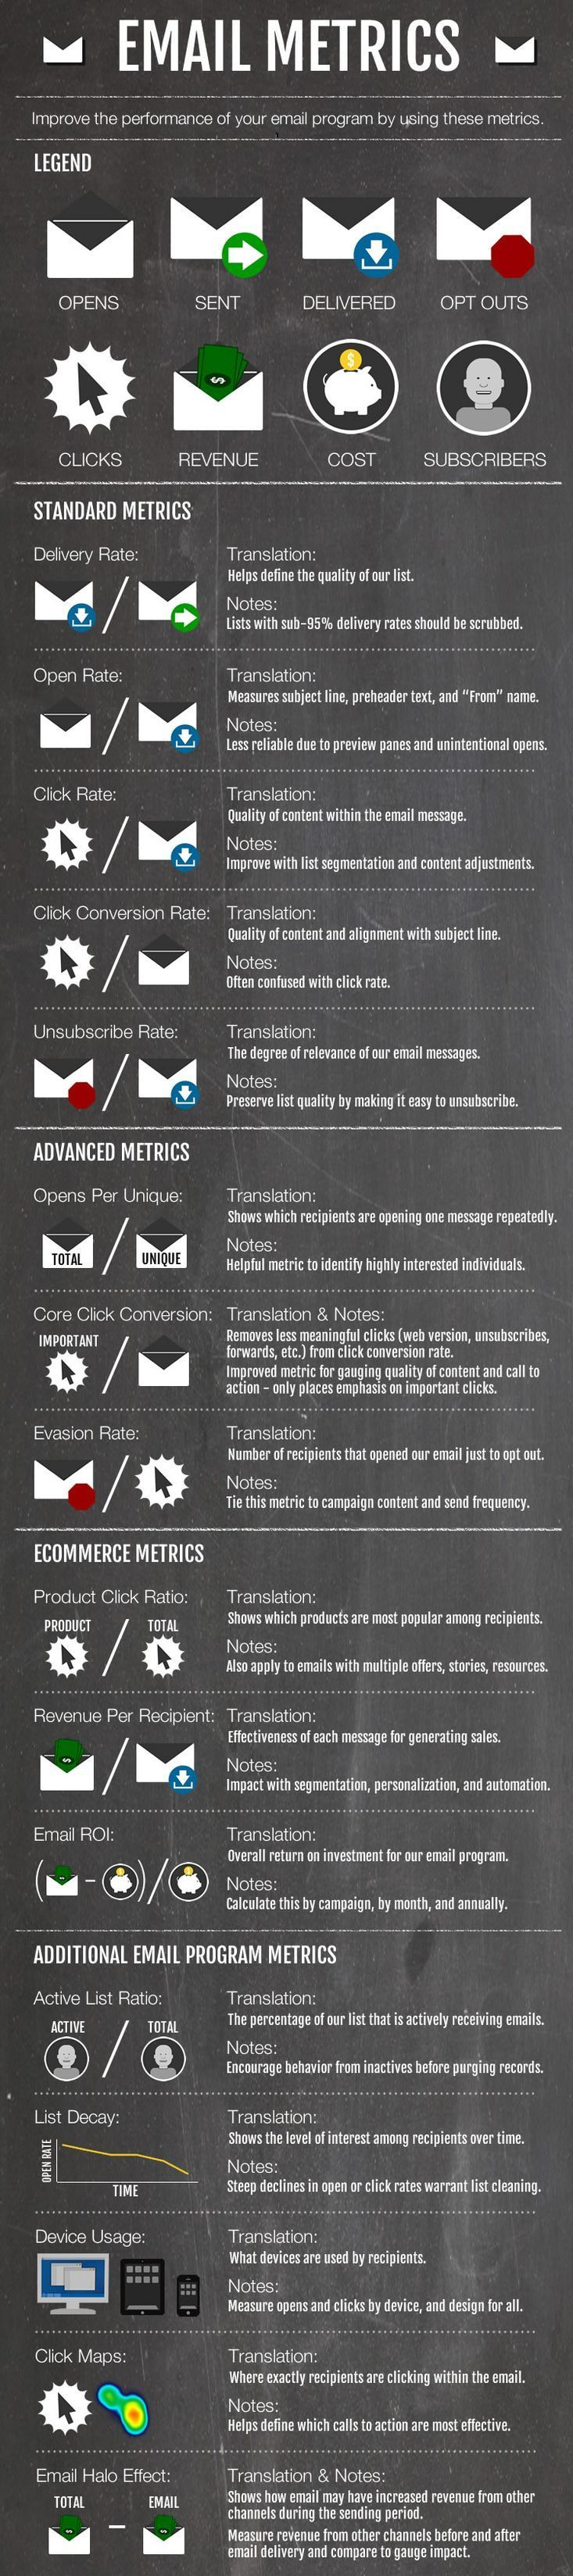 How to plan digital measurement? | Digital optimisation | Pinterest ...